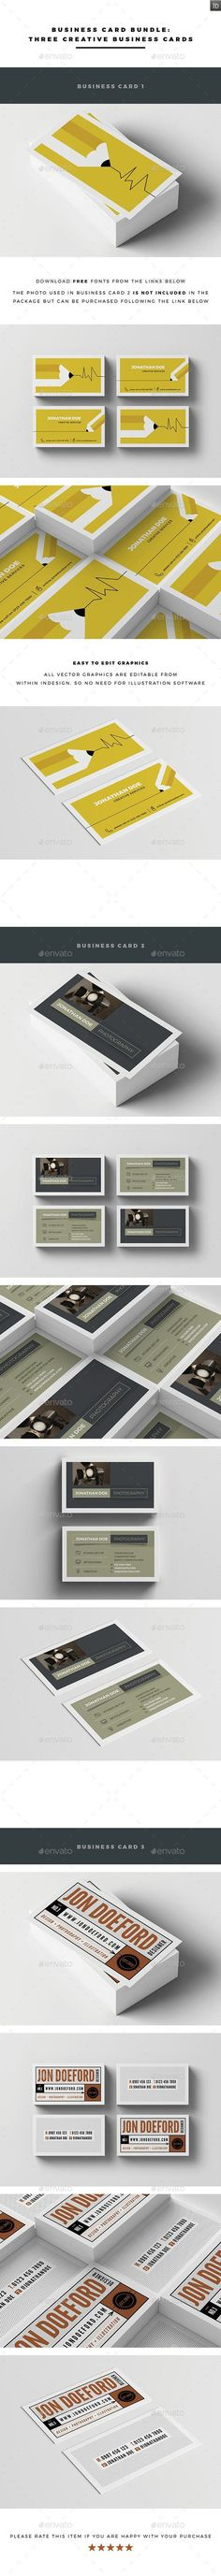 Business Card Bundle - Creative Business Card Template InDesign INDD. Download here: http://graphicriver.net/item/business-card-bundle/12612776?s_rank=1745&ref=yinkira